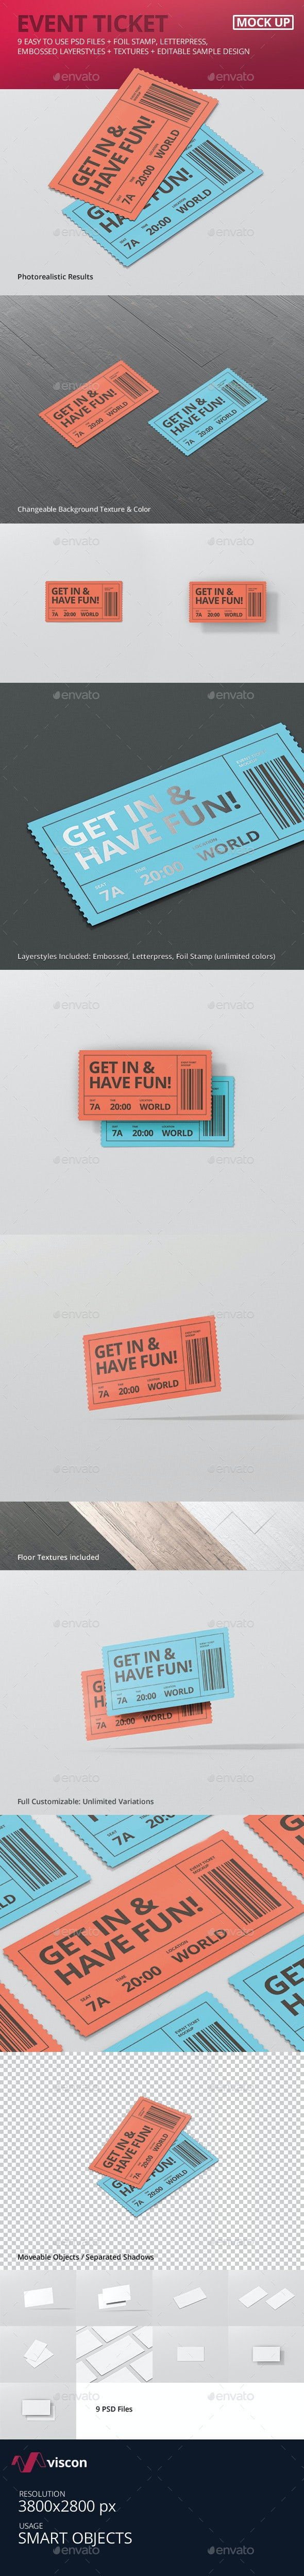 Event Ticket Mockup - Miscellaneous Print